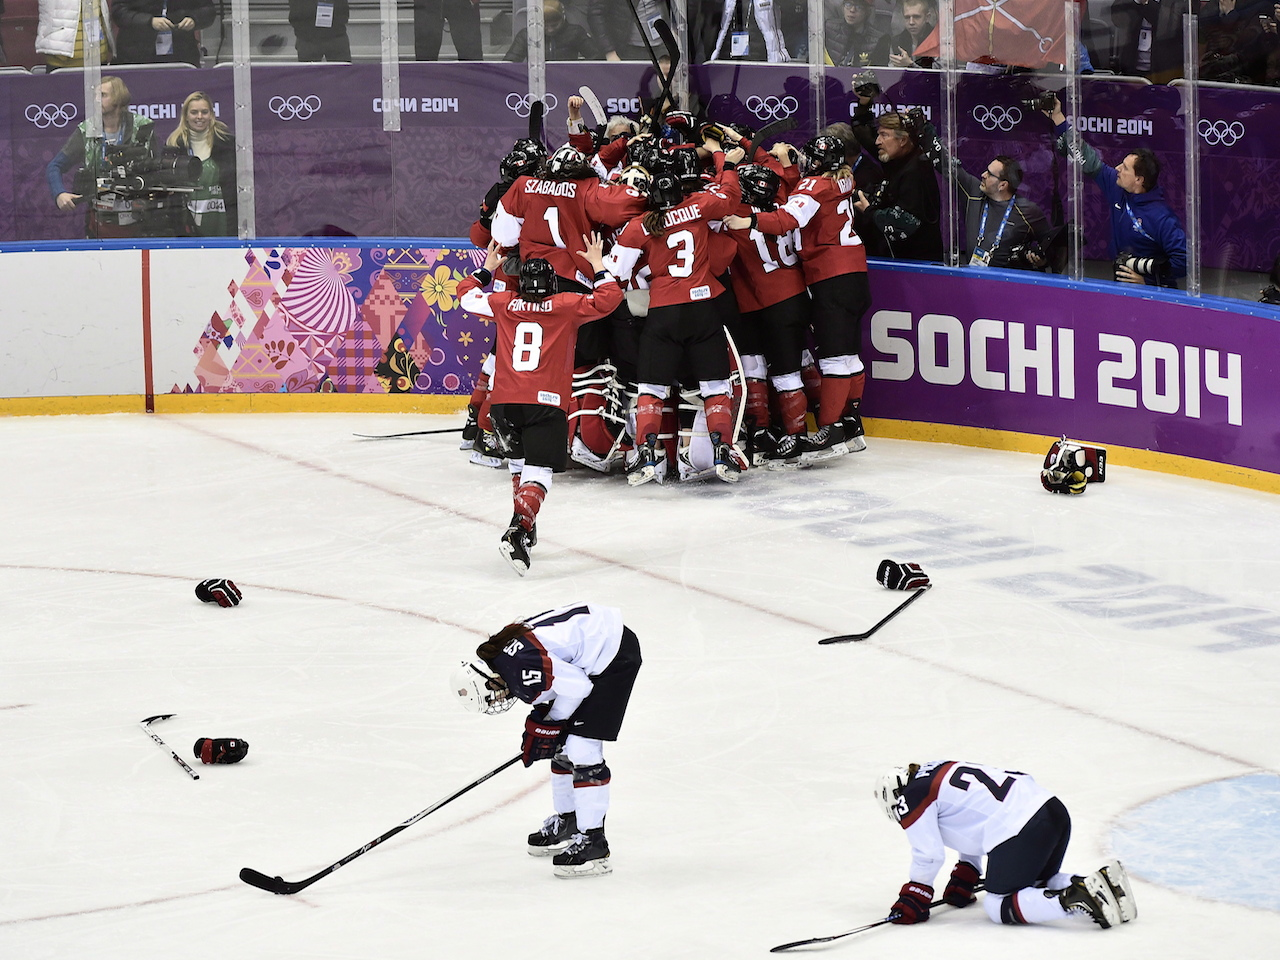 Women's hockey: team Canada crushes the US at the Sochi Olympics in 2014